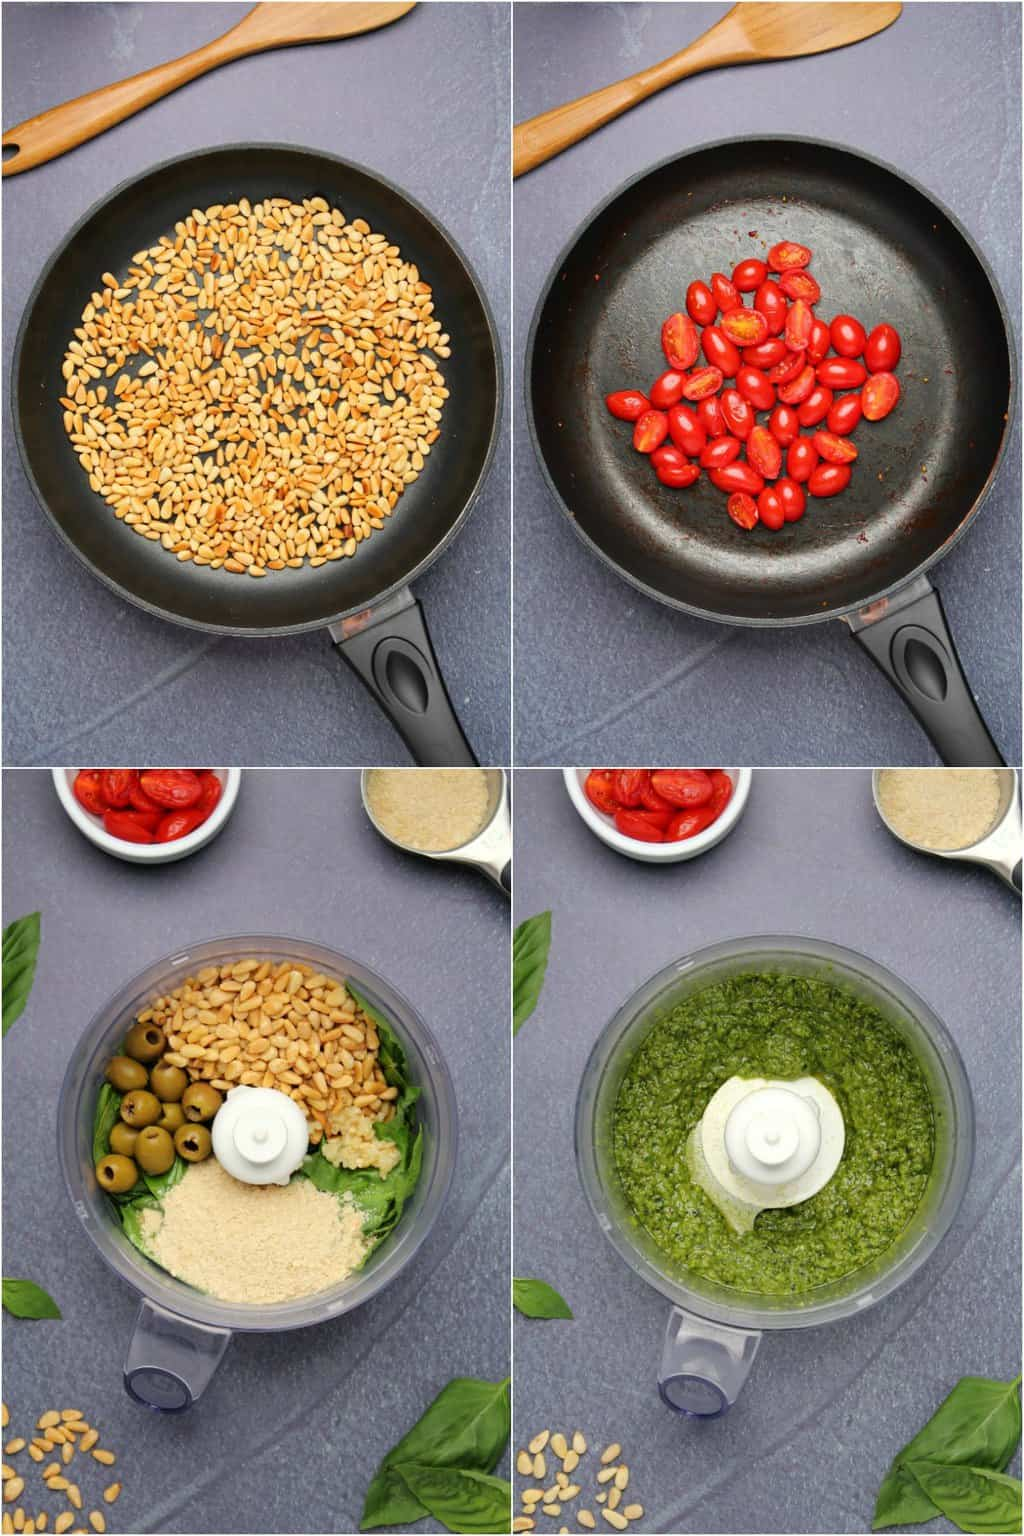 Step by step process photo collage of making vegan pesto pasta.